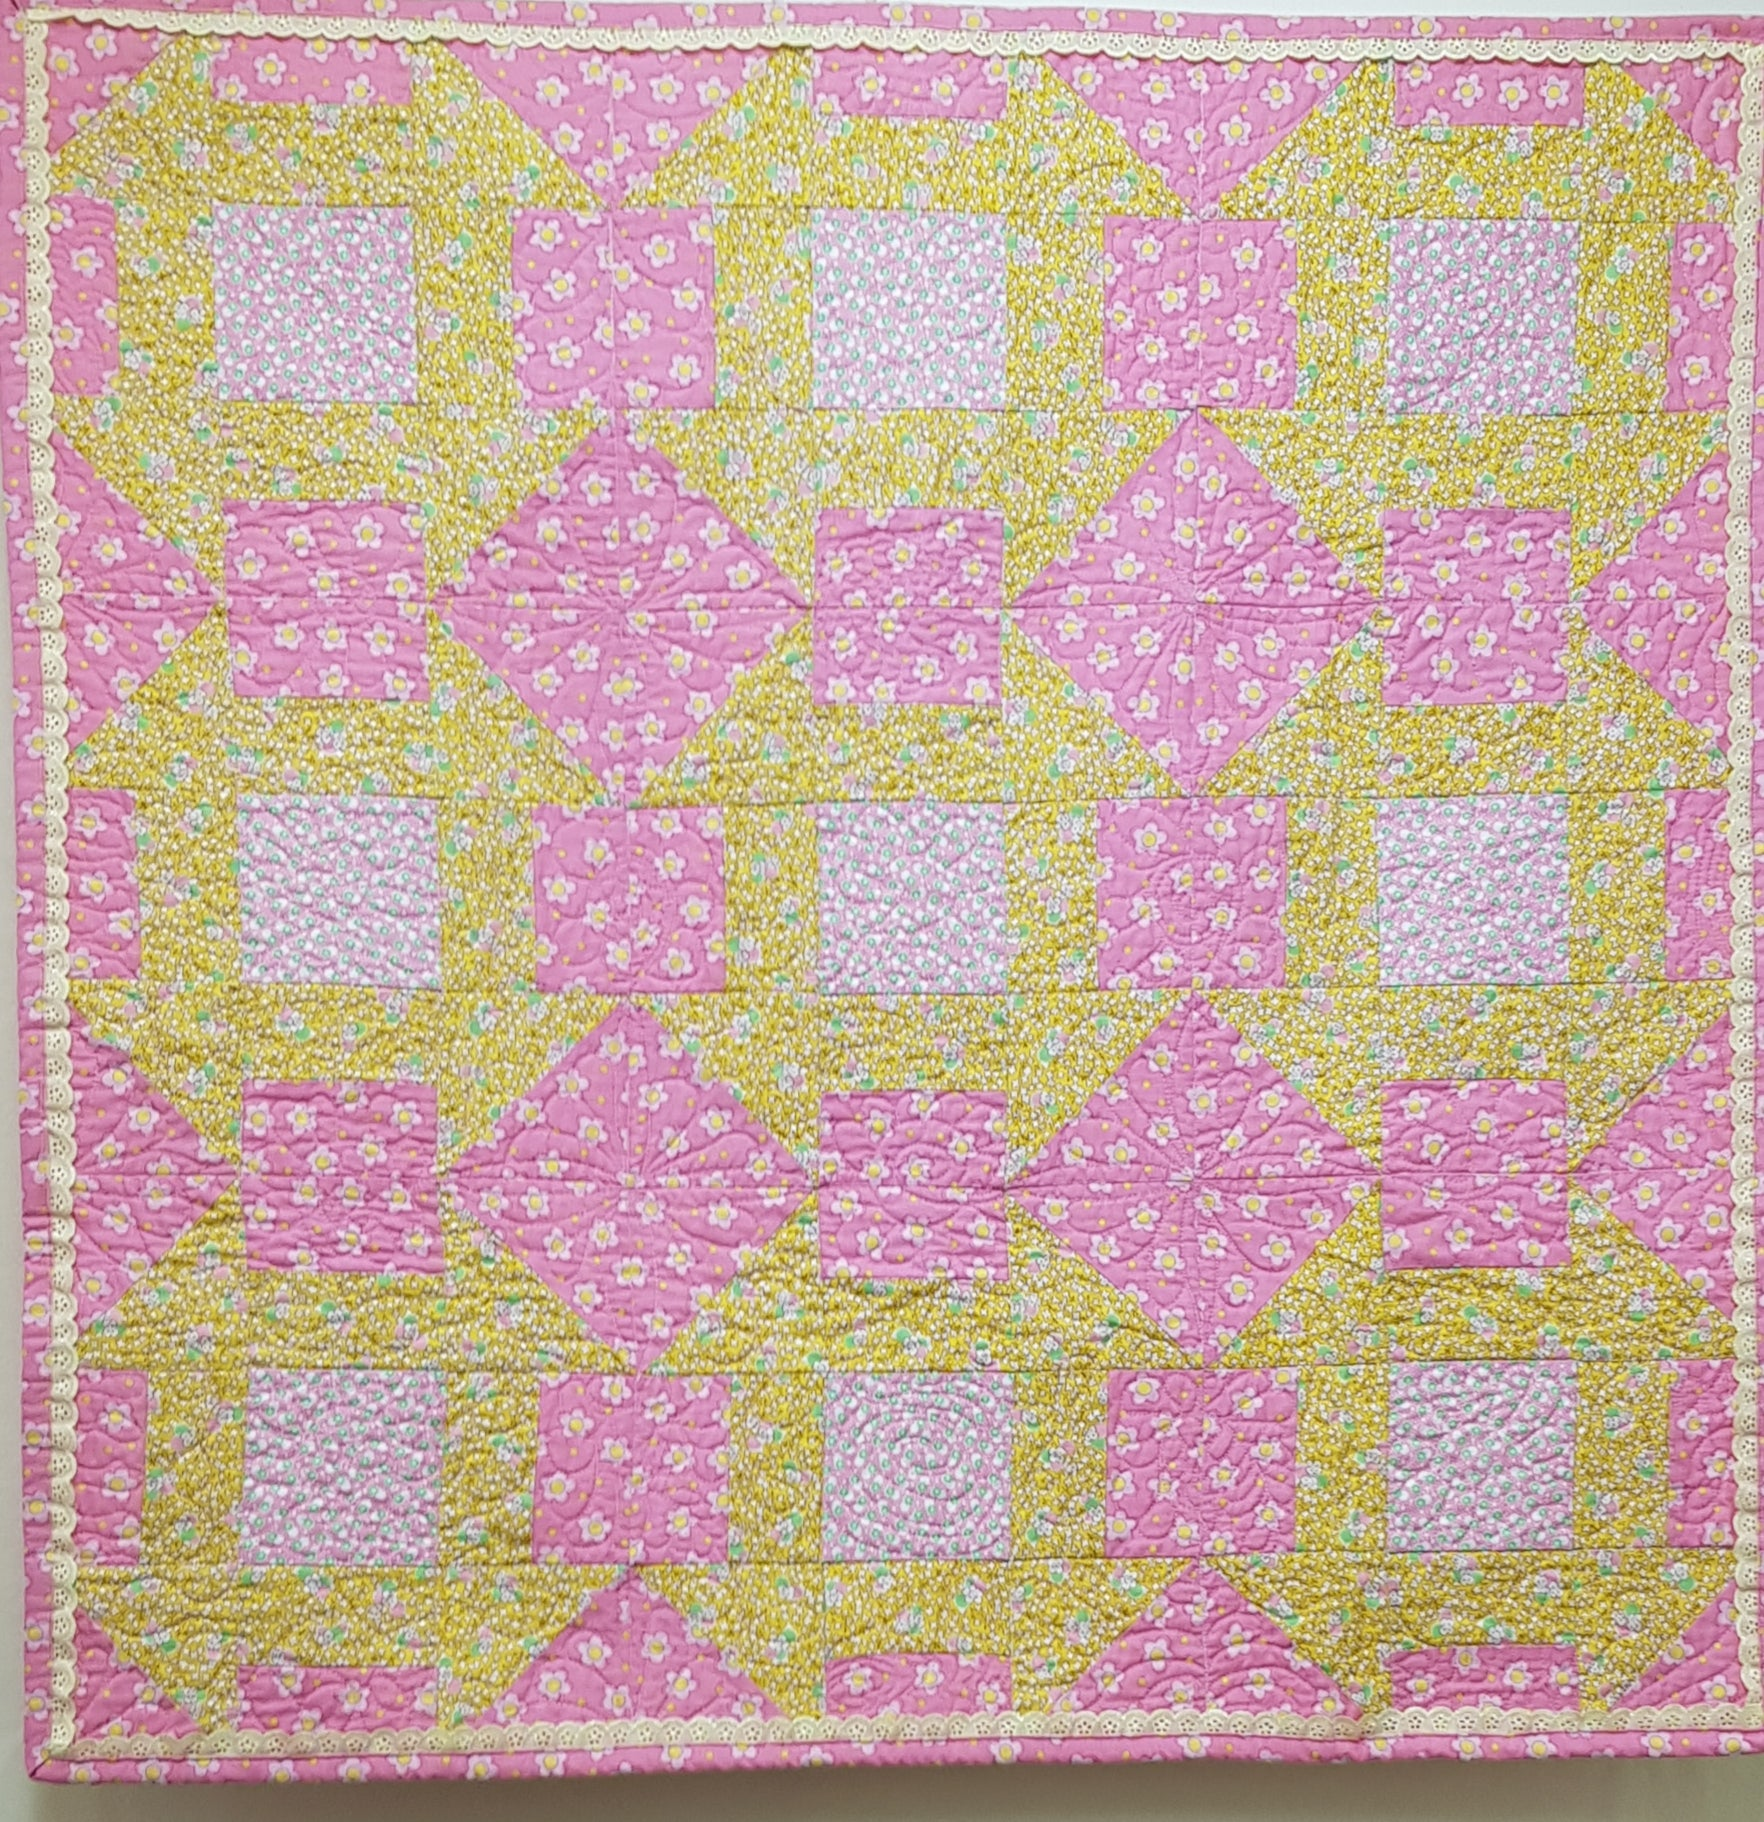 Traditional Churn-Dash Quilt with Lace Edging (88cm²) - Lori's Fabrics & Quilts